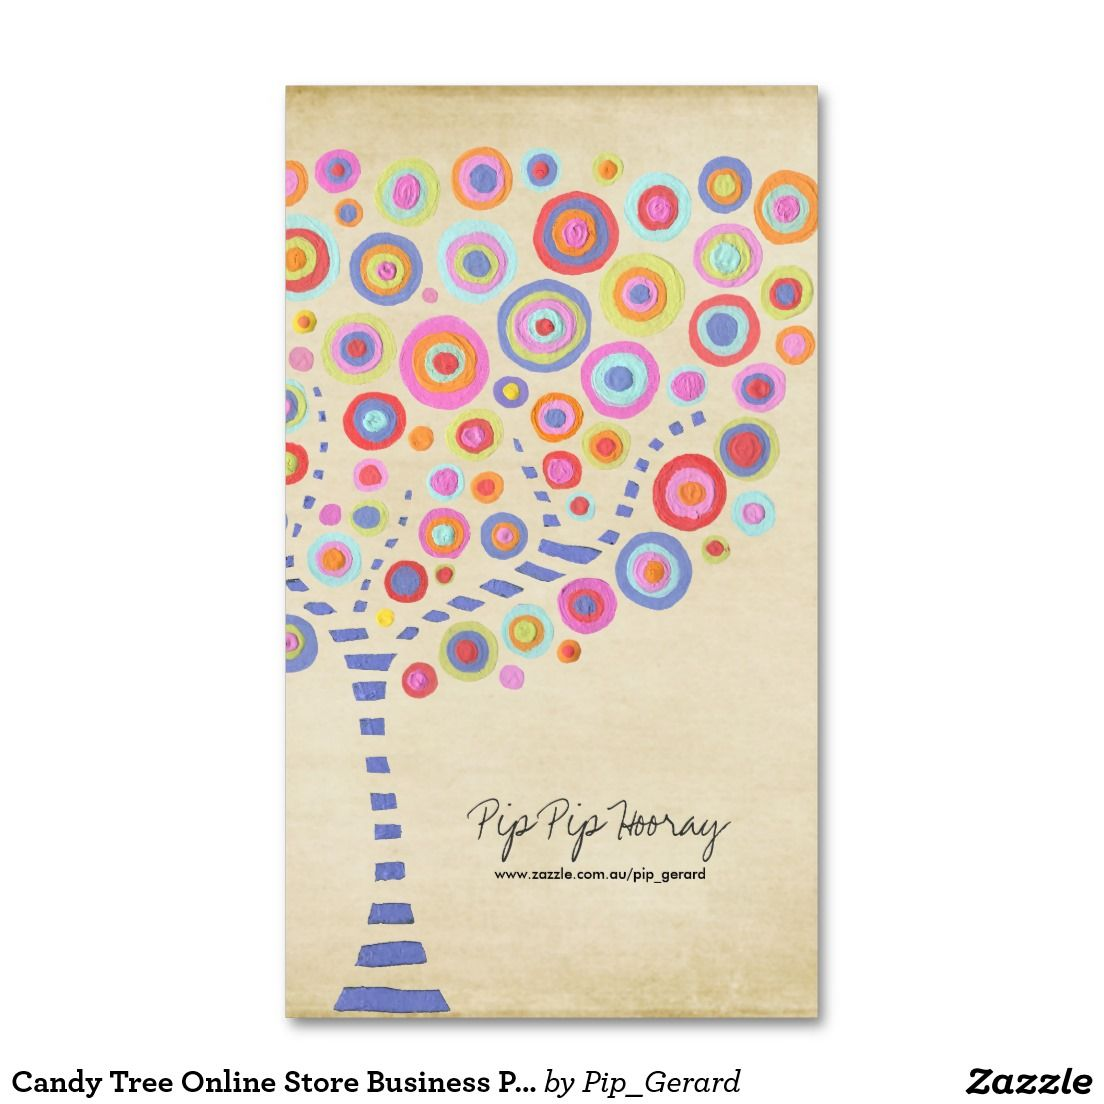 Candy Tree Online Store Business Profile Card | Trees online, Candy ...